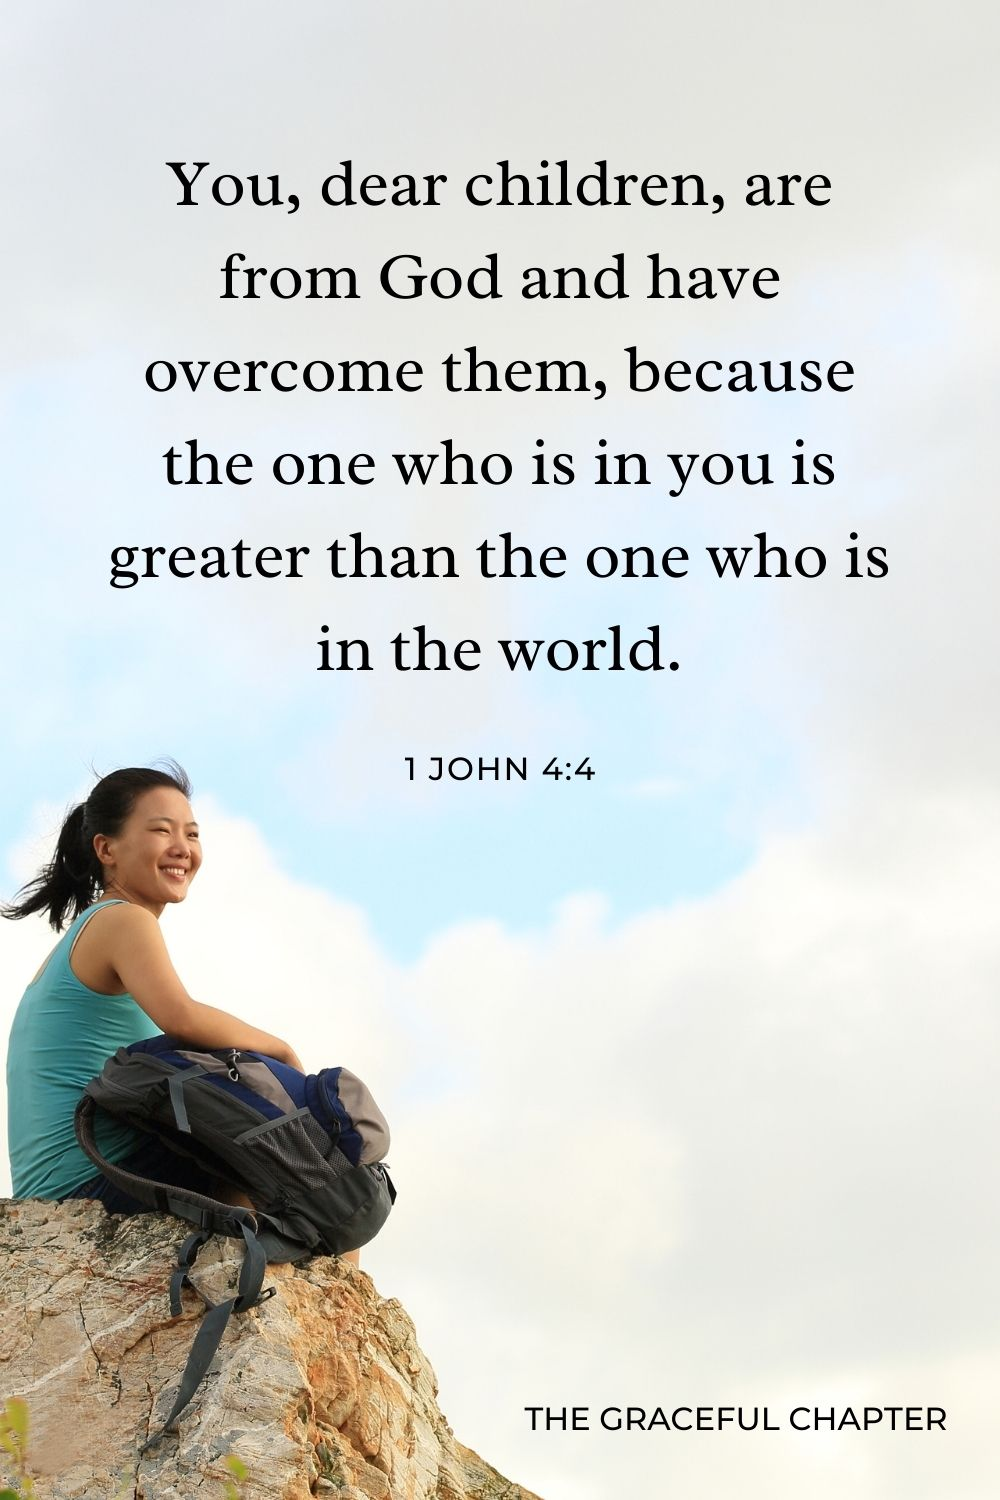 You, dear children, are from God and have overcome them, because the one who is in you is greater than the one who is in the world. 1 John 4:4